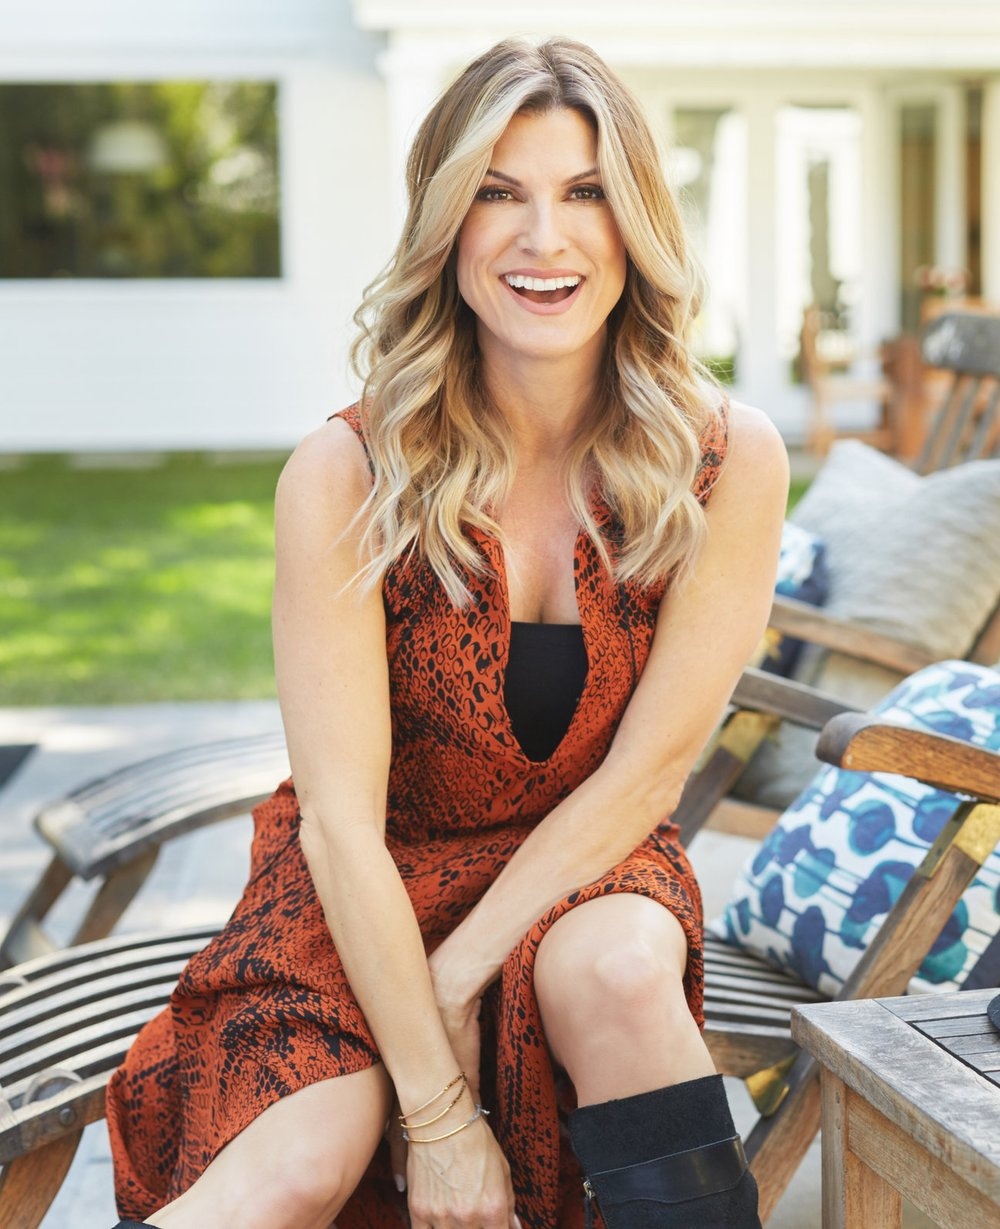 "Emmy® Award winner Trish Suhr, a native of Kentucky now living in Los Angeles, puts a modern spin on keeping it real. The star of Style Network's long running Clean House, she uses her southern sensibilities to navigate the big city and knows what it takes to stay in the game...spin classes, clean eating and Spanx!  According to Trish, when the Spanx come off, it's like opening a can of biscuits.Trish's ""sass and bourbon"" approach to life has landed her on top television shows including Good Morning America, The New Ricki Lake Show, The Marie Osmond Show, Good Day LA, Good Day NY, as well as on a variety of programs for CMT, VH1, E!, Style Network and Lifetime Networks. -"